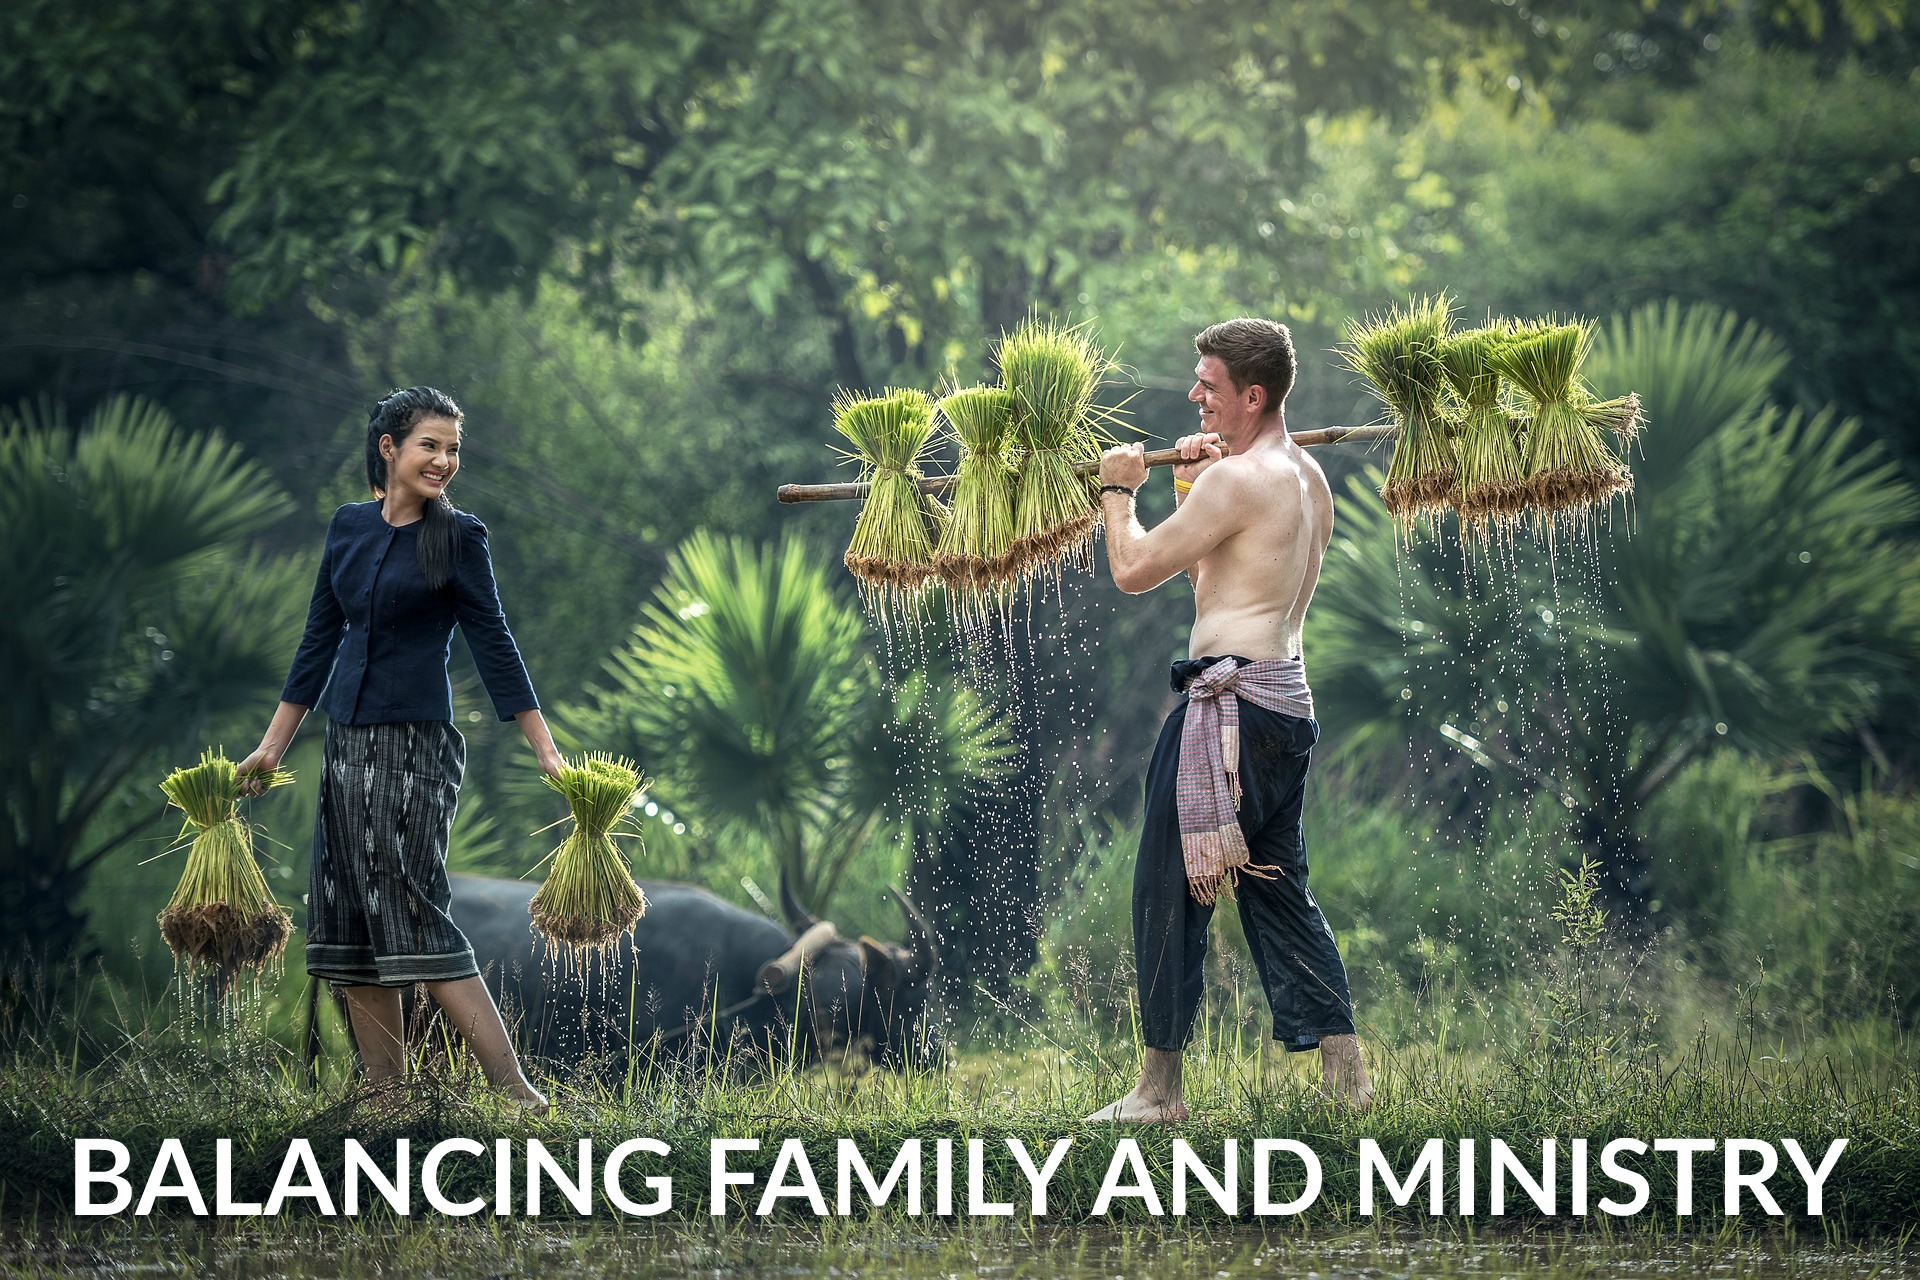 Balancing Family and Ministry